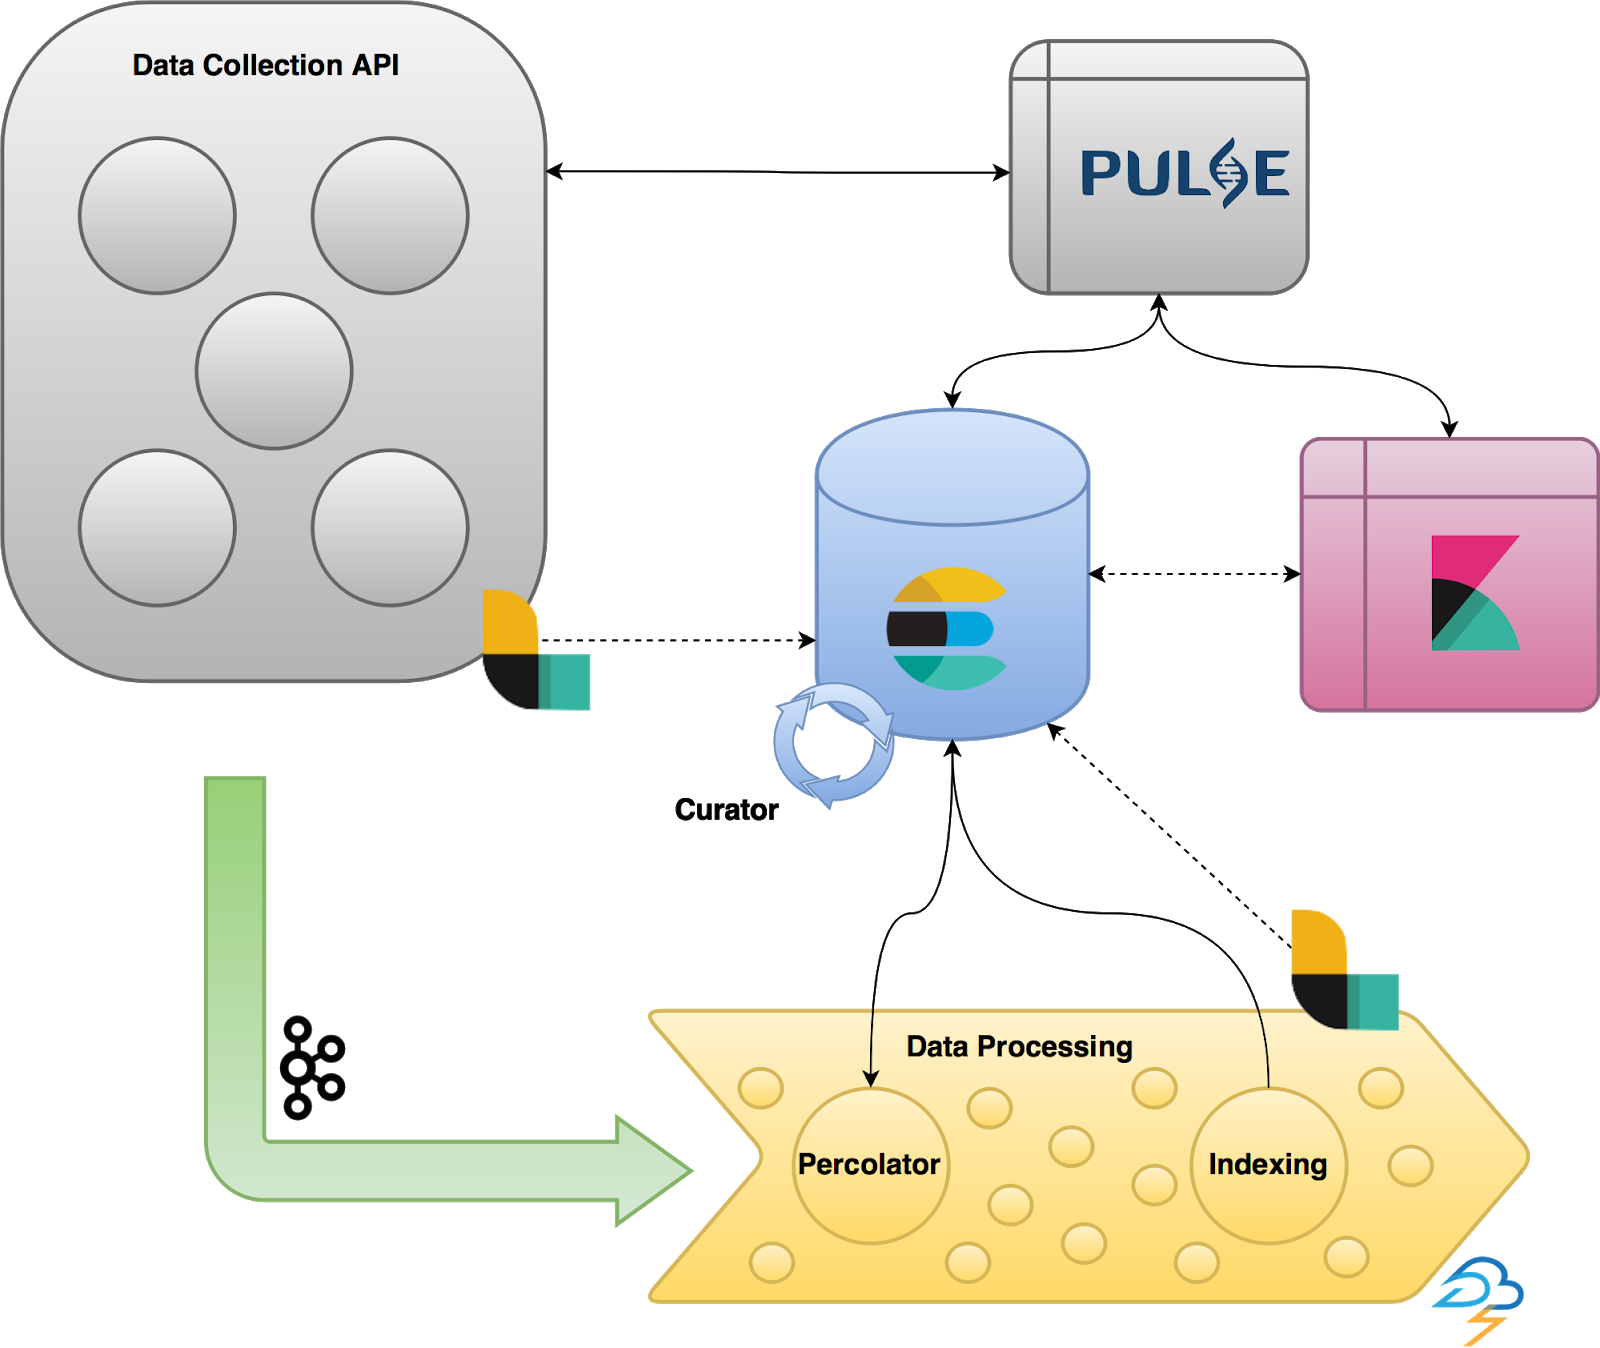 IST Research data collection and ingestion pipeline